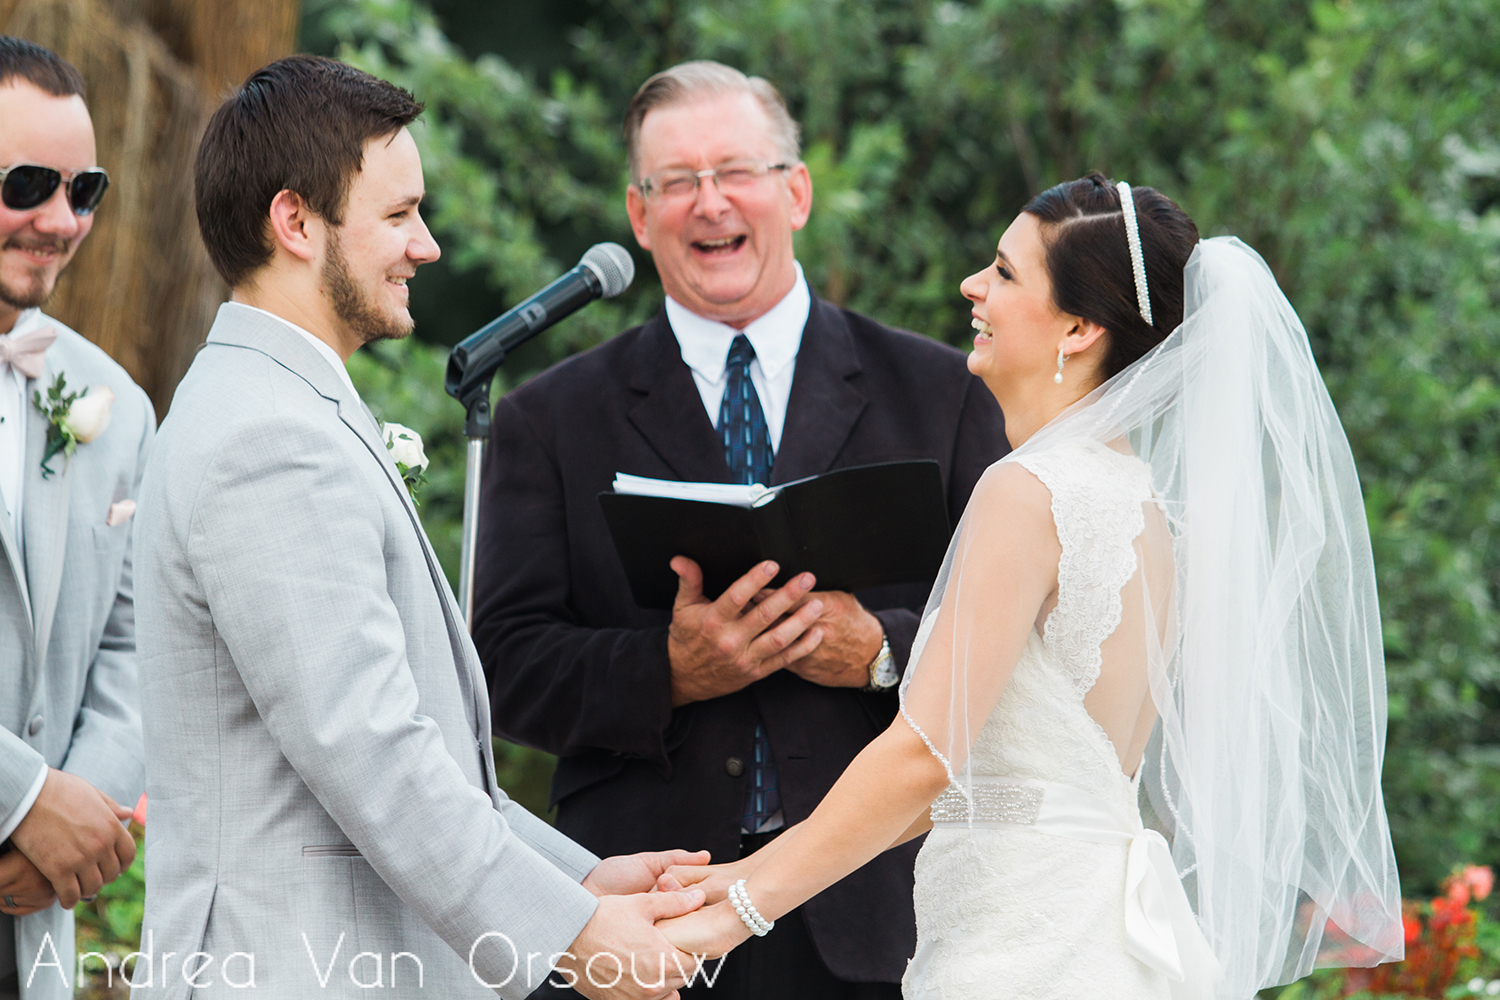 laughing_at_ceremony.jpg